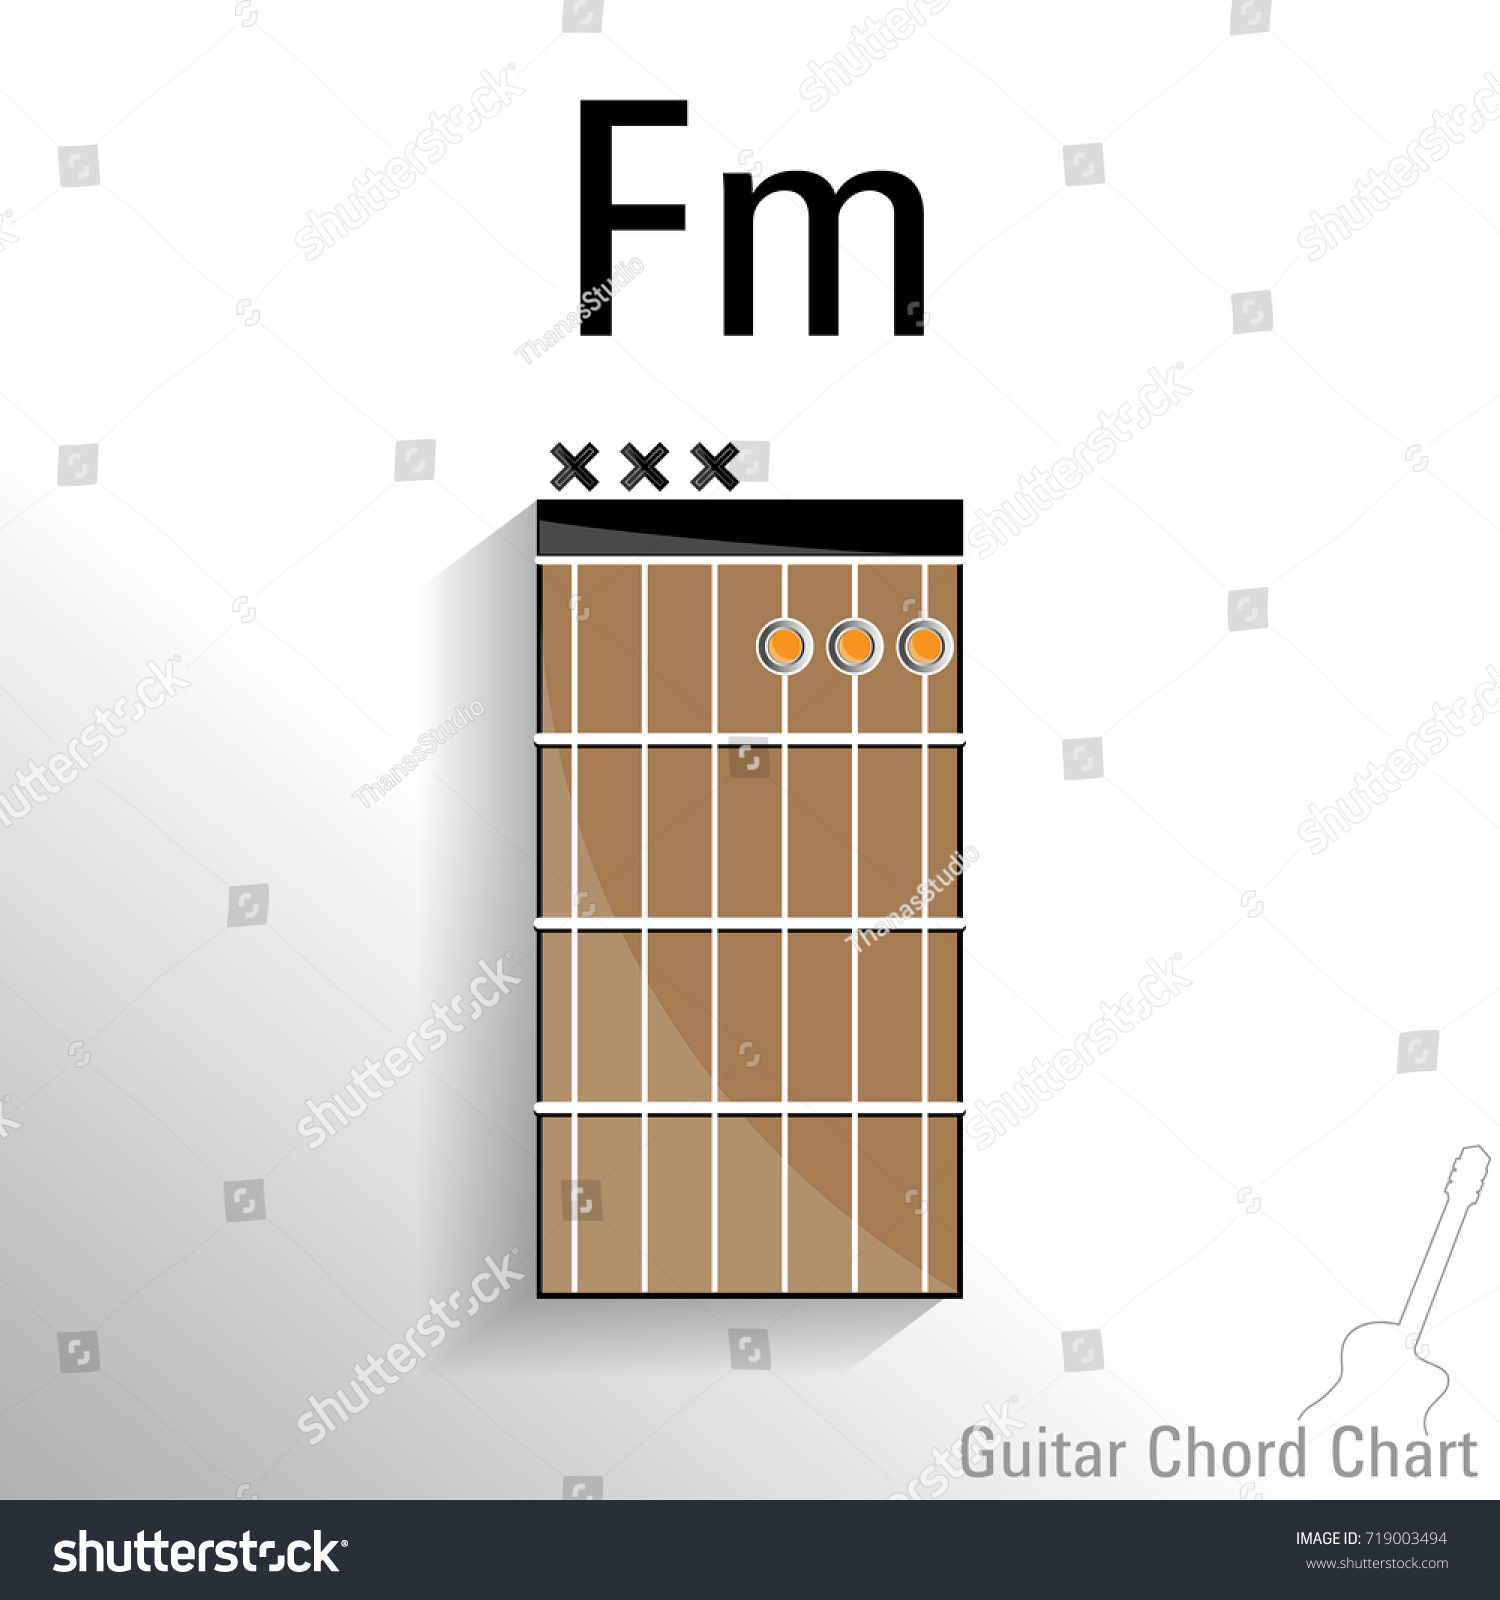 Guitar Chord Fm Chart Vector Design Stock Vector Royalty Free